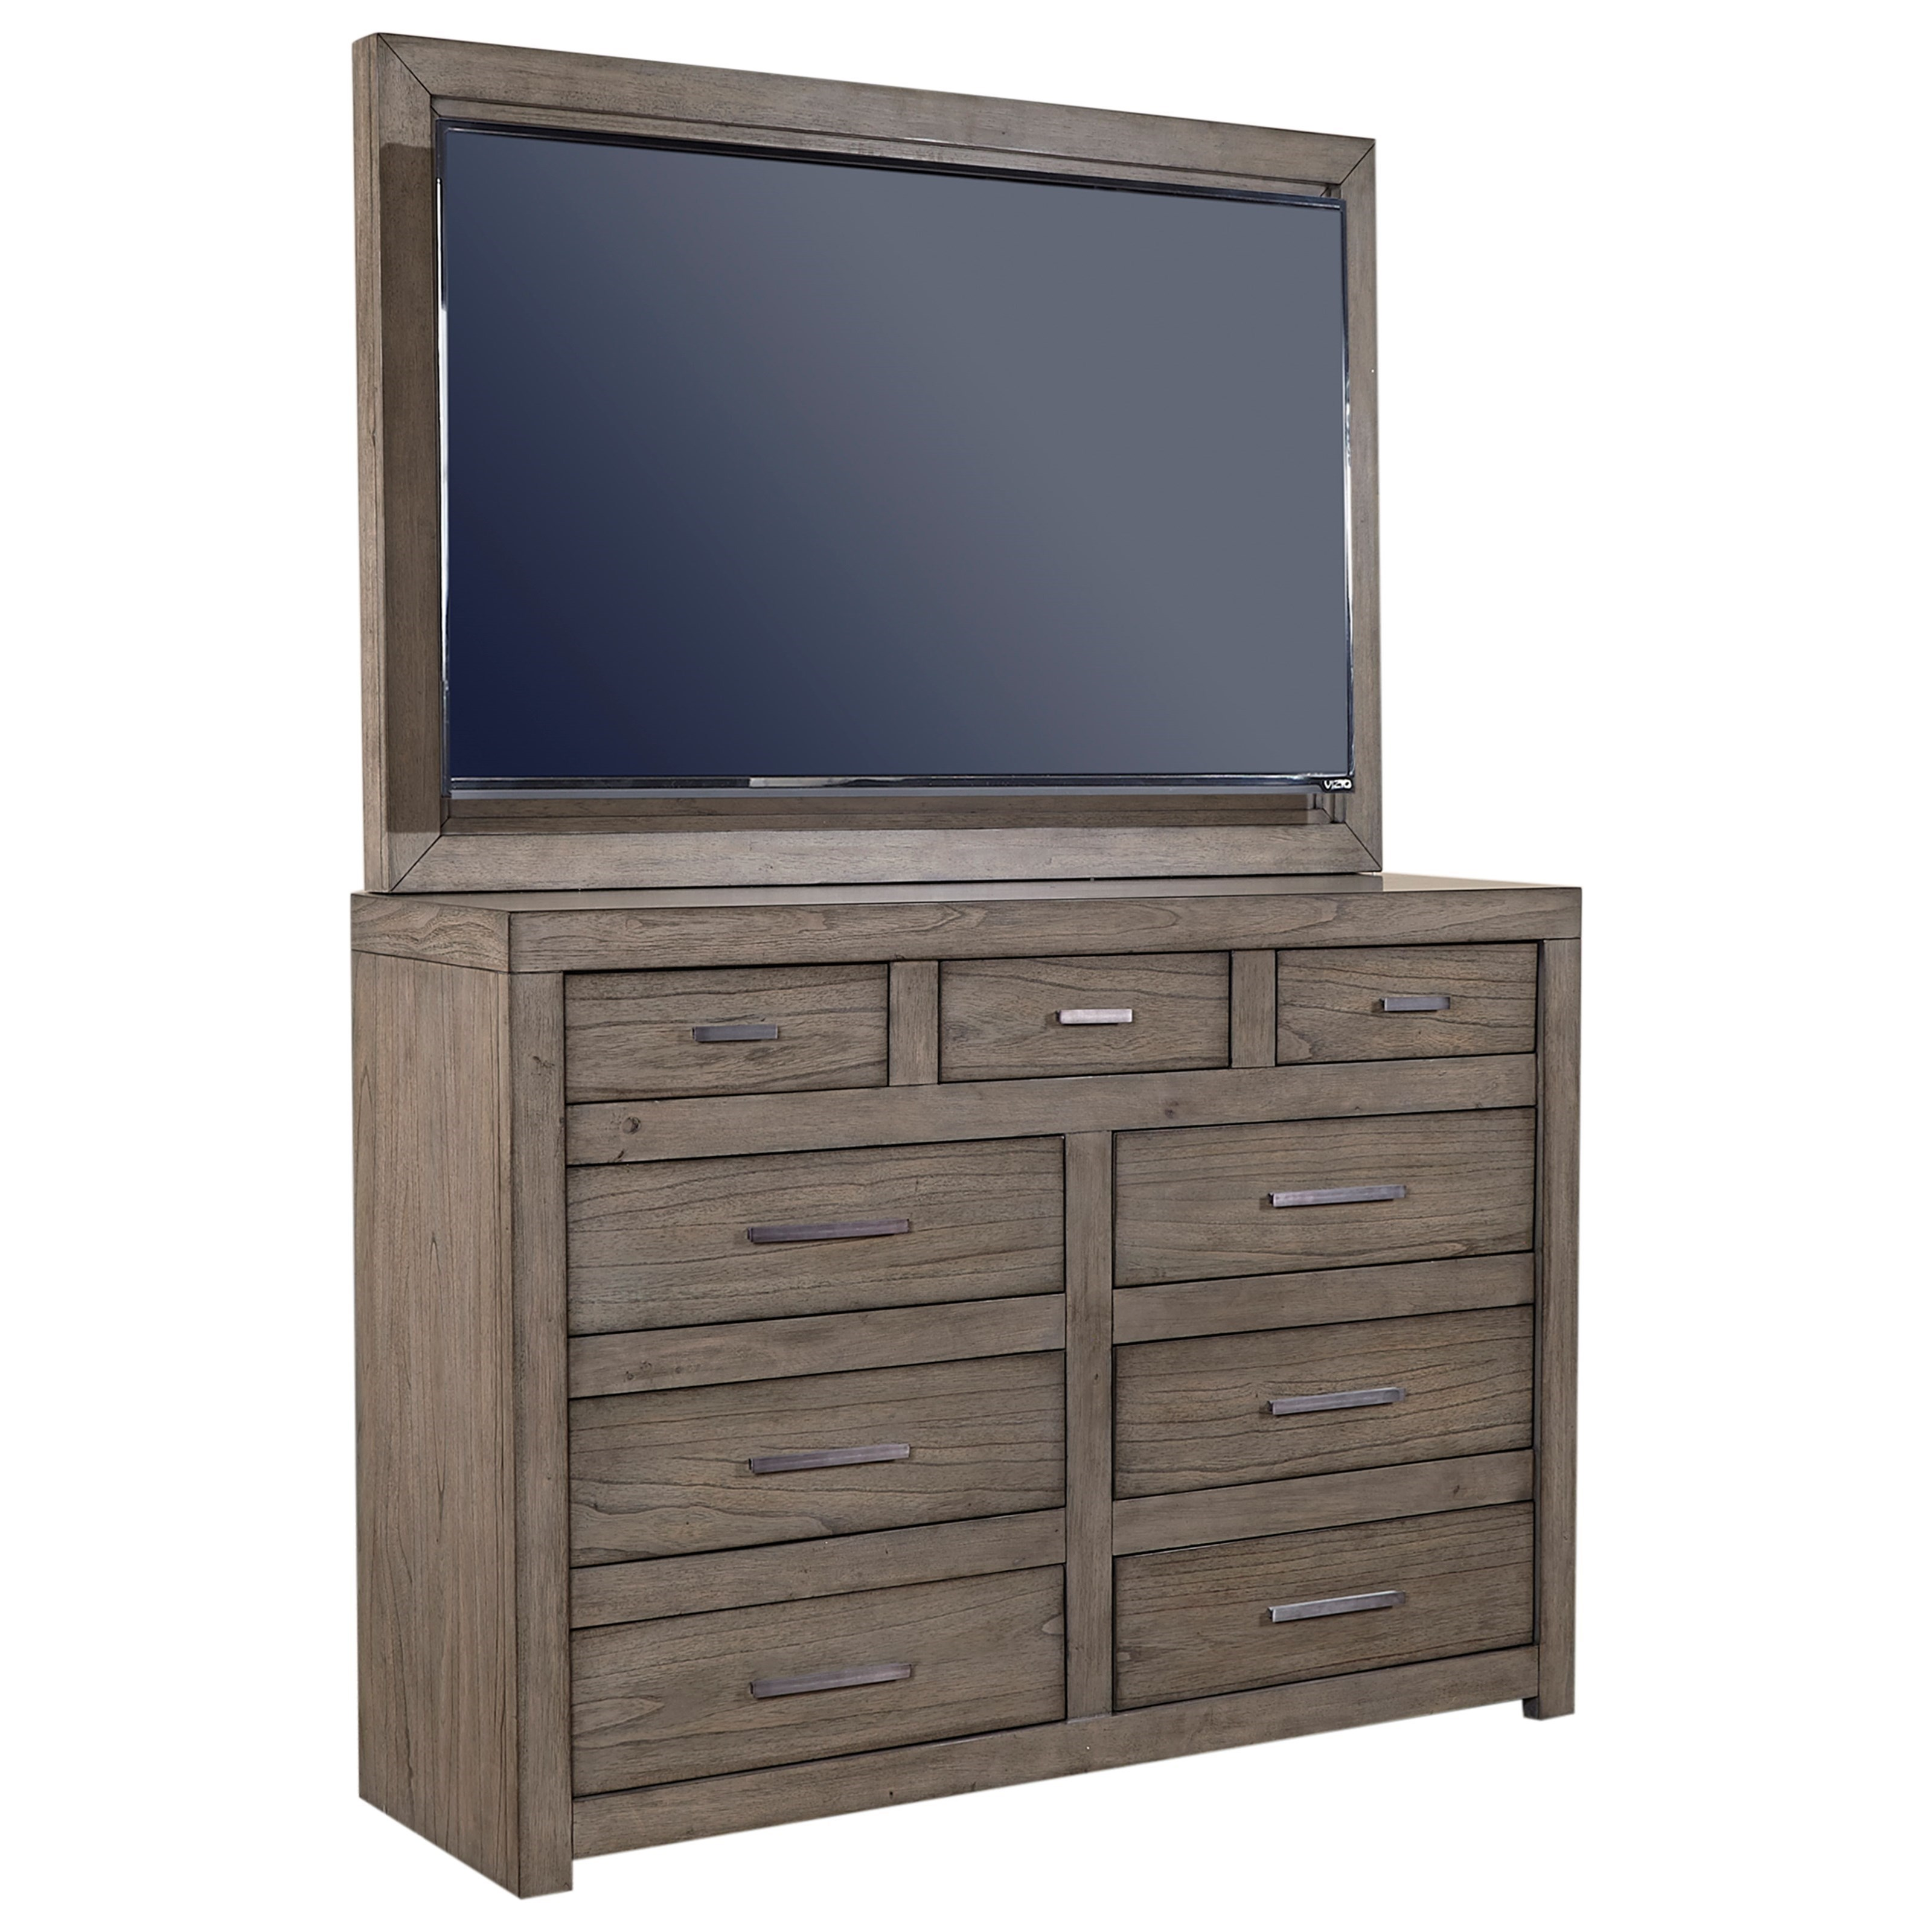 Modern Loft Media Chest with TV Mount by Aspenhome at Baer's Furniture